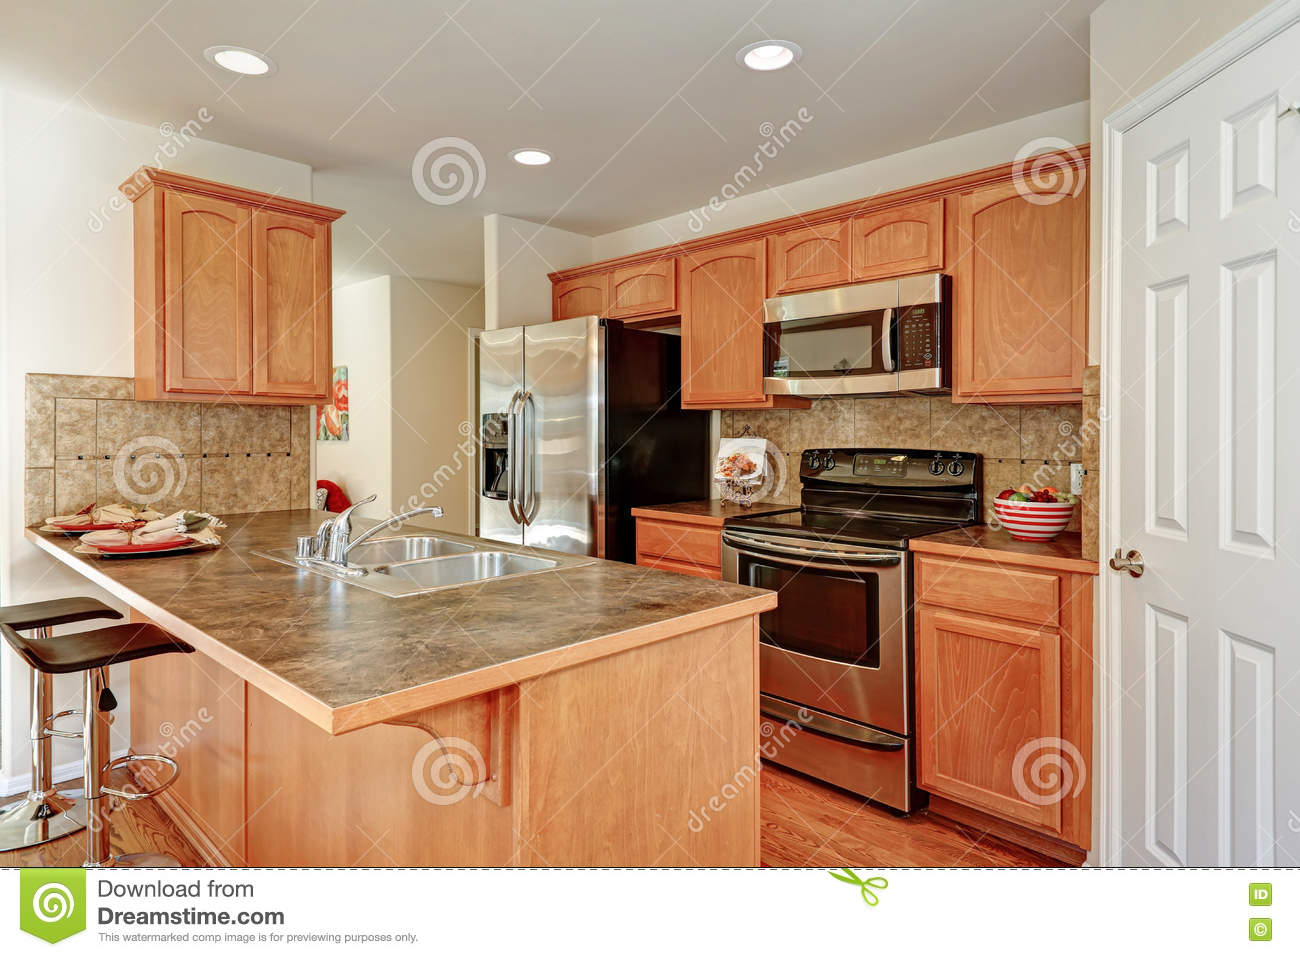 Kitchen Room In Brown And White Colors Stock Image Image Of Shiny Bright 80016555